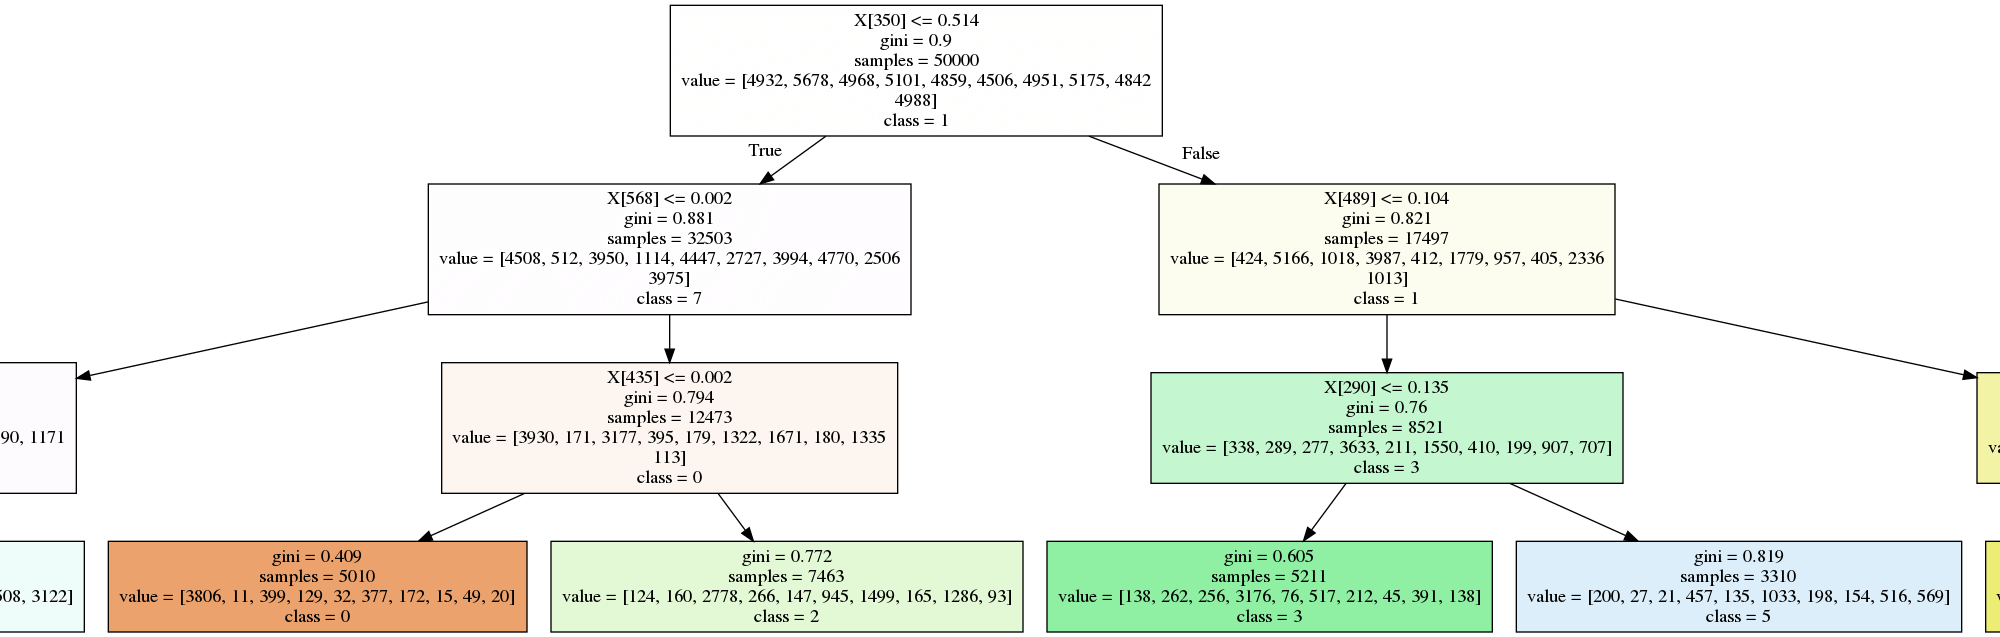 a normal decision tree trained on MNIST